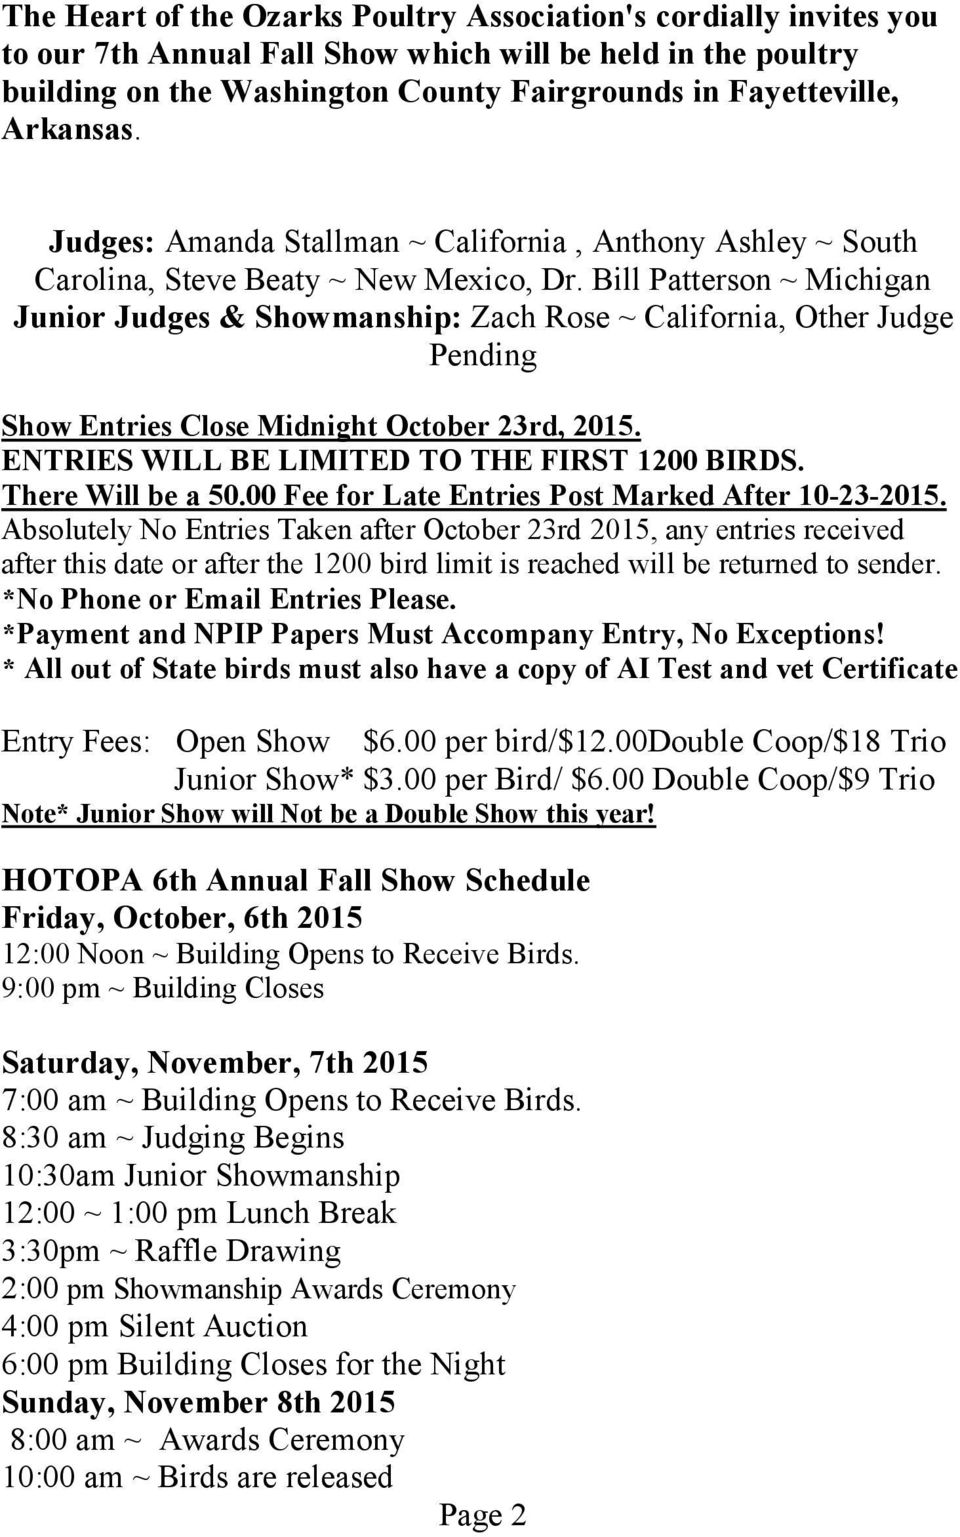 Bill Patterson ~ Michigan Junior Judges & Showmanship: Zach Rose ~ California, Other Judge Pending Show Entries Close Midnight October 23rd, 2015. ENTRIES WILL BE LIMITED TO THE FIRST 1200 BIRDS.